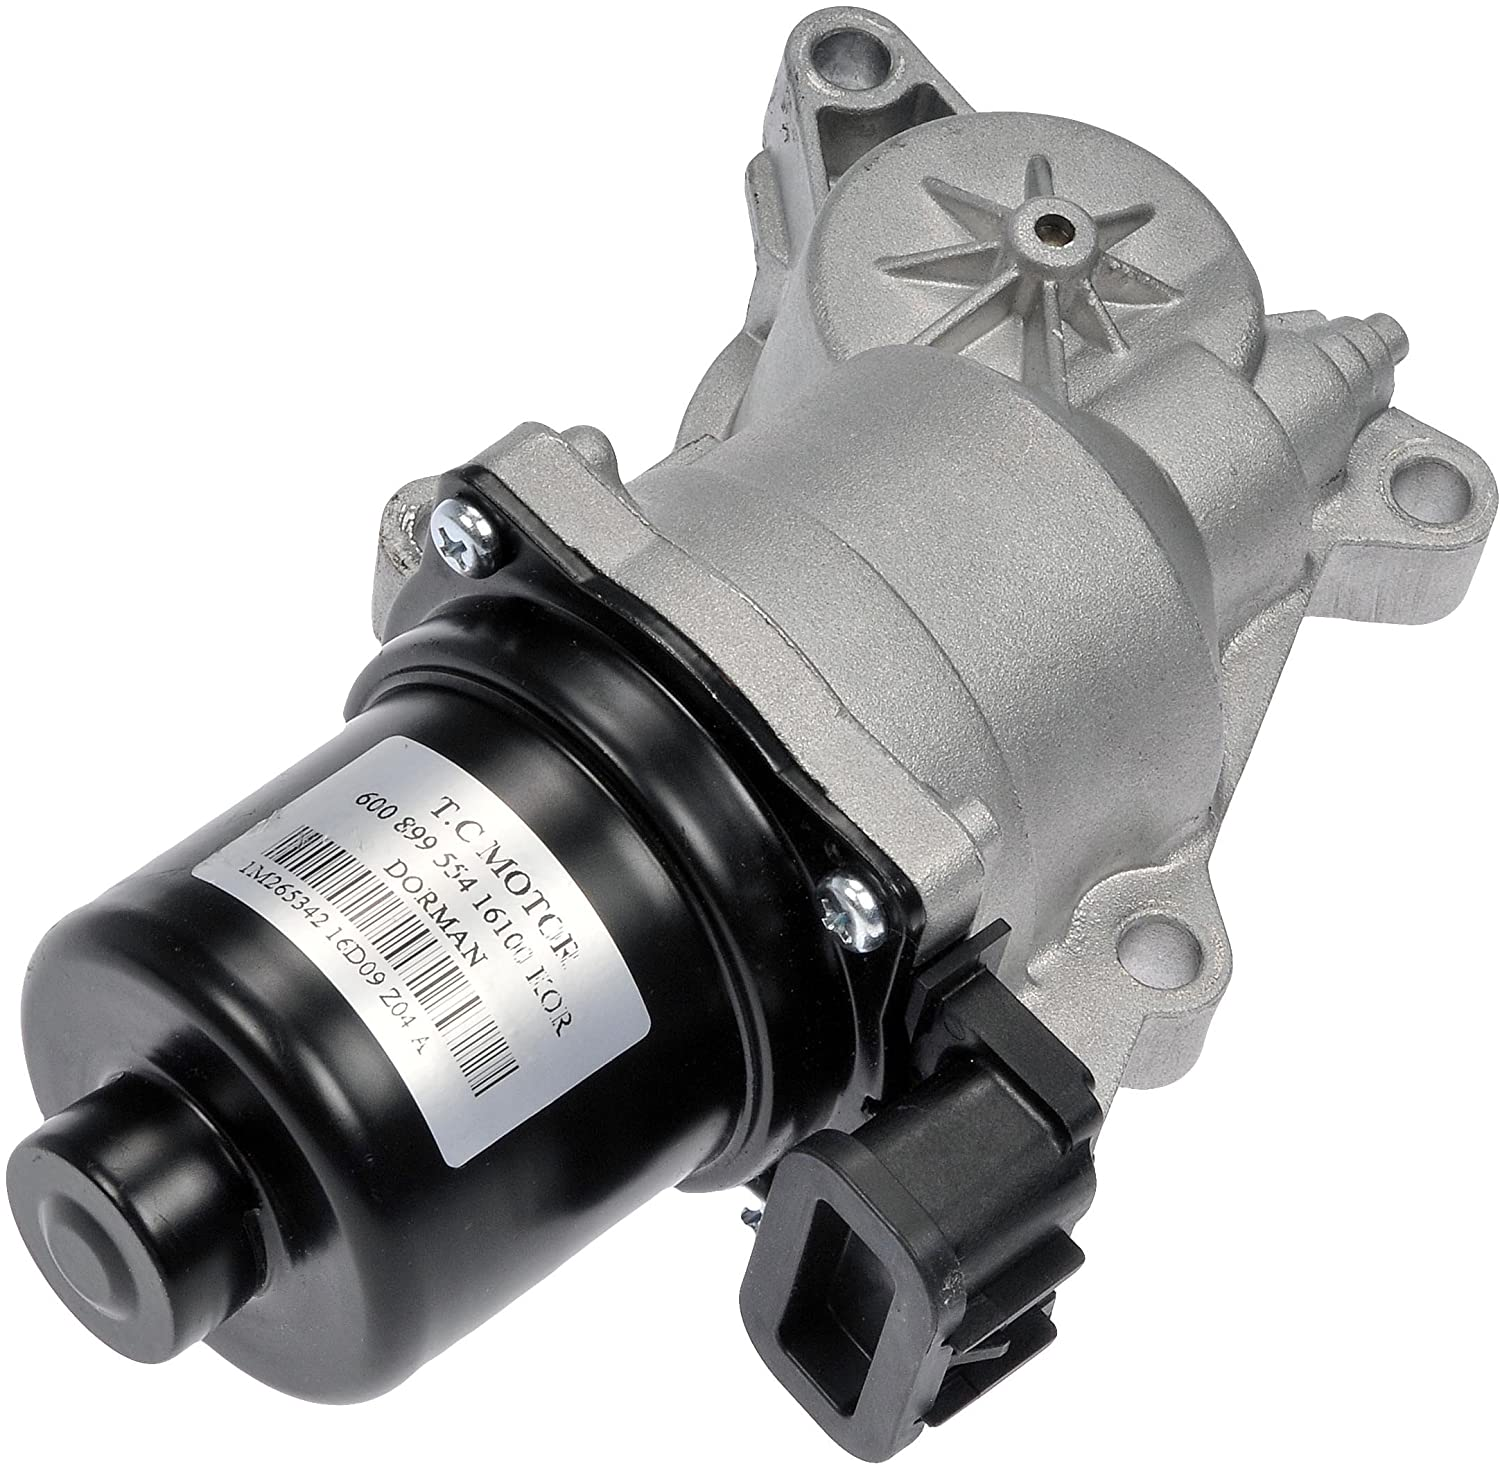 Dorman Cheap sale 600-899 4WD Transfer Case for Select Assembly Motor Chevr Ranking TOP19